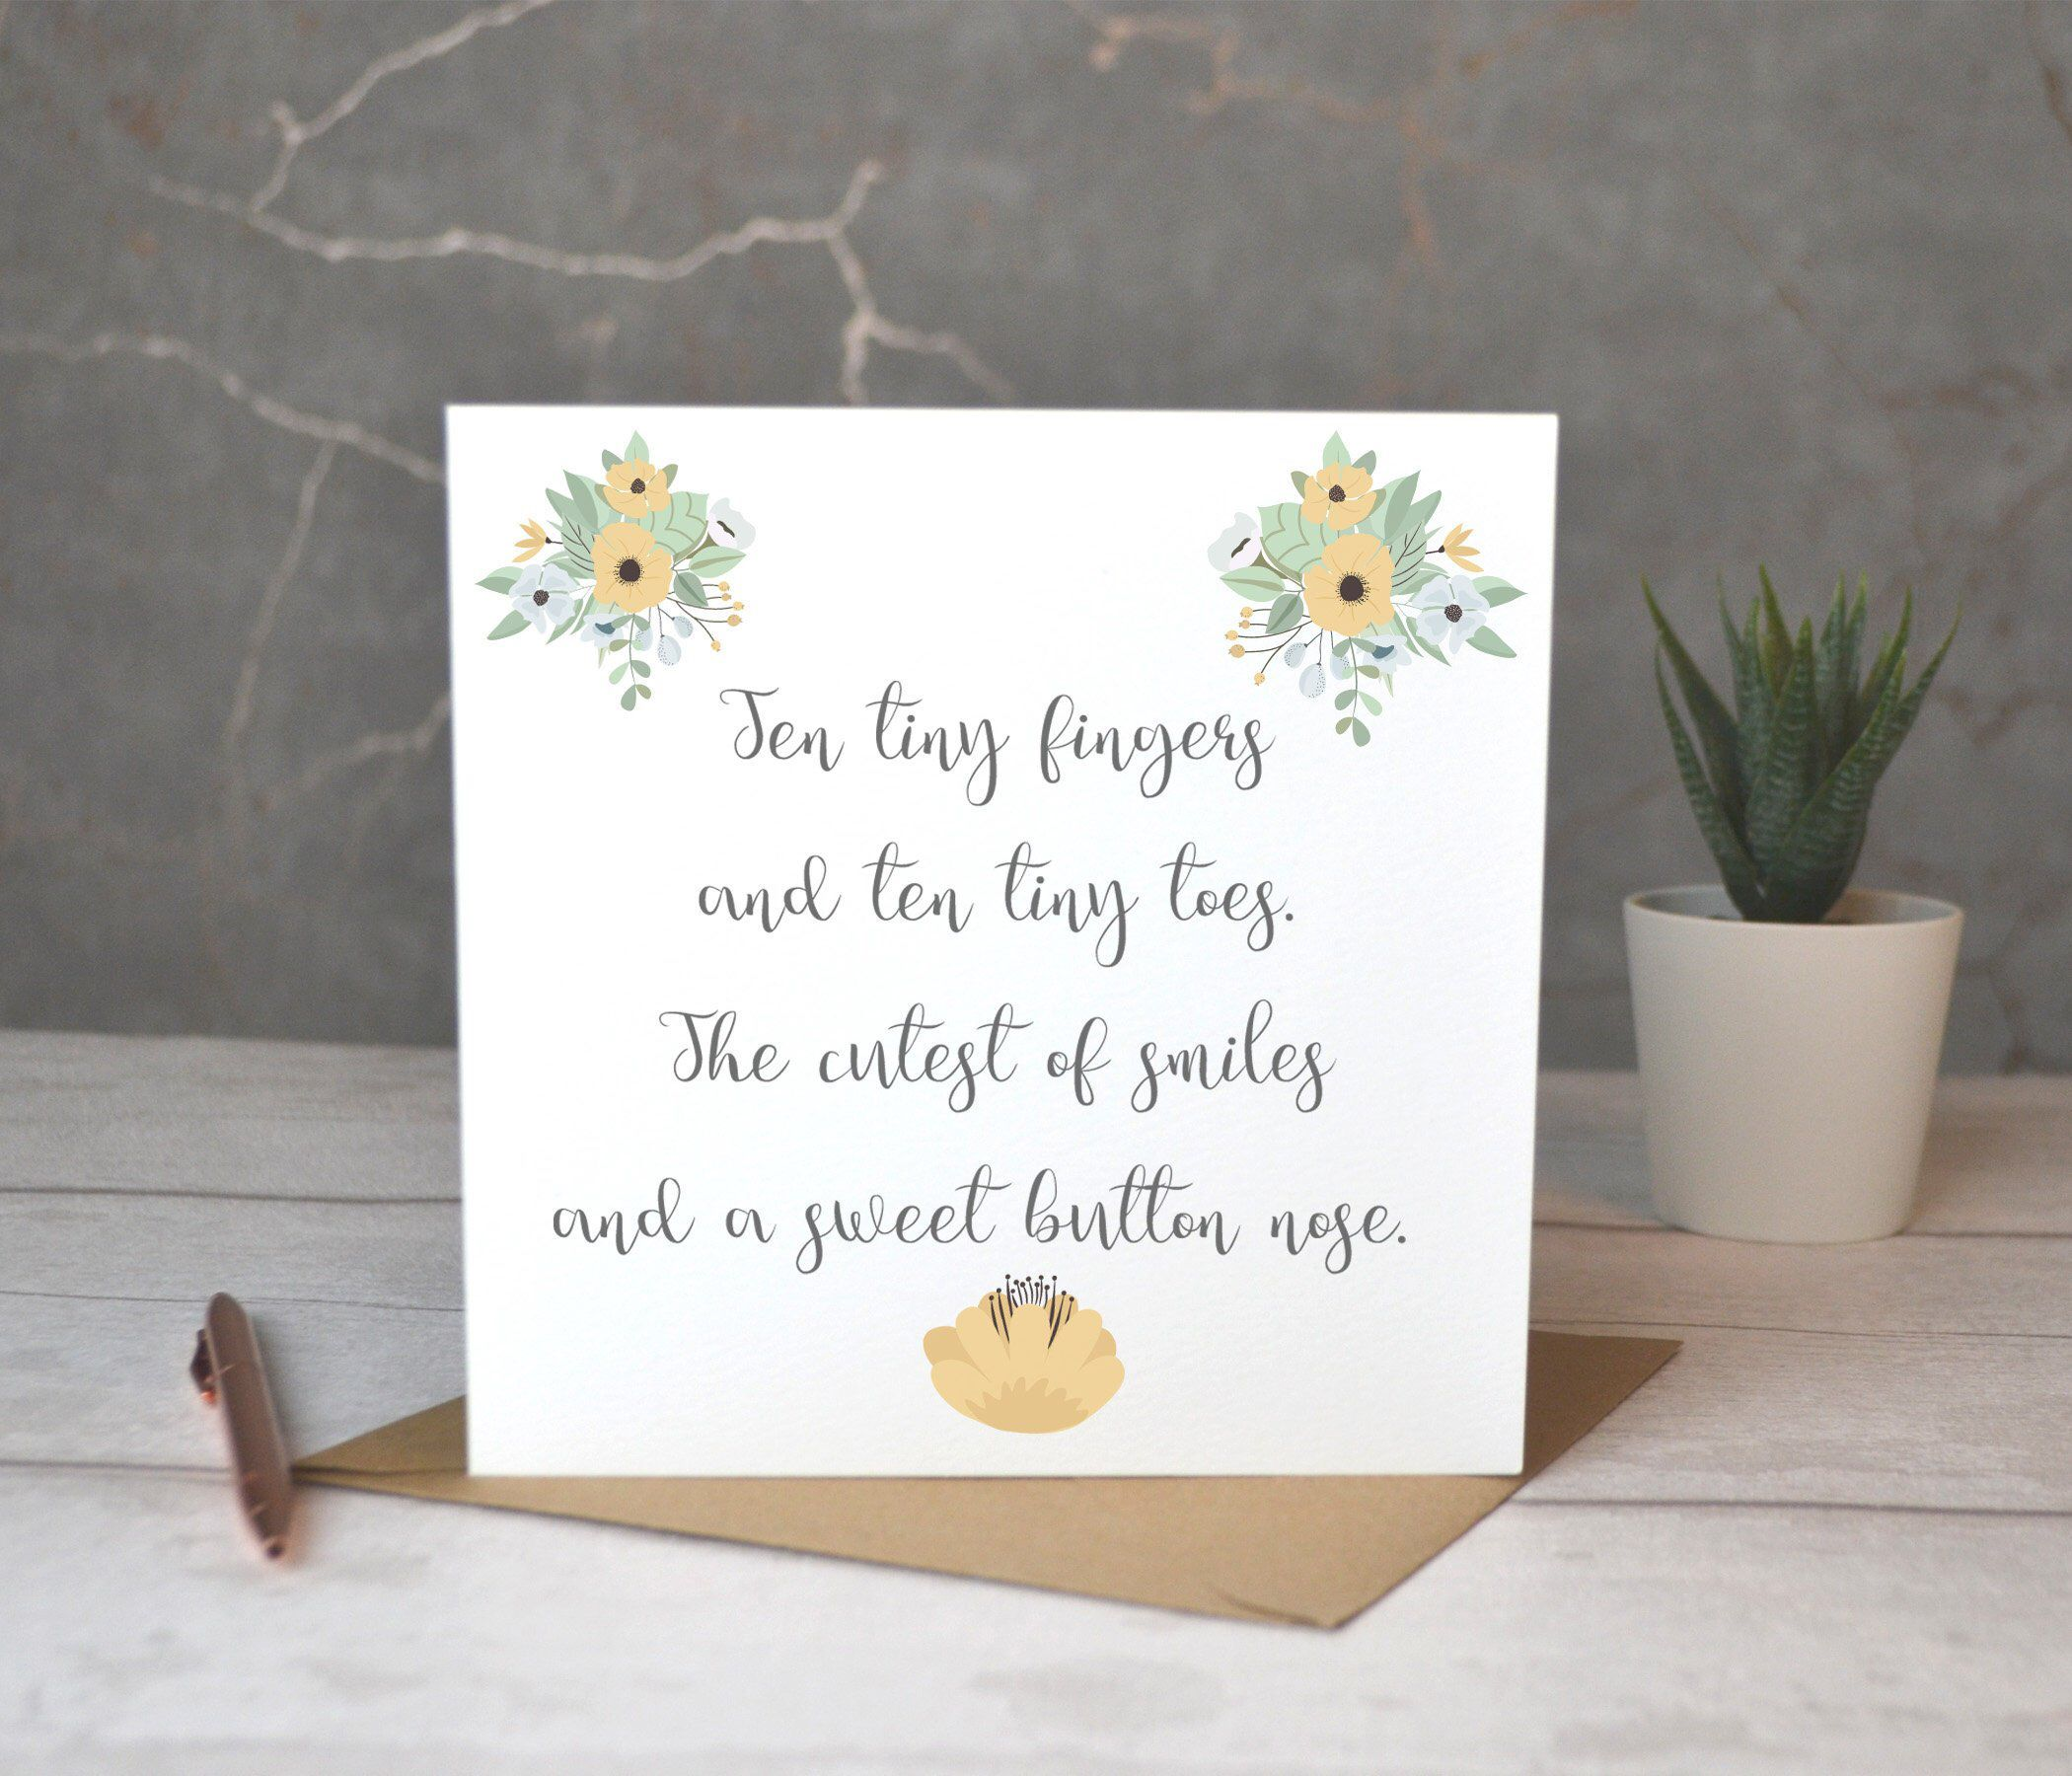 Excited To Share This Item From My Etsy Shop Special New Baby Card 10 Tiny Fingers And 10 Tiny Toes New Baby E New Baby Products New Baby Cards Baby Cards